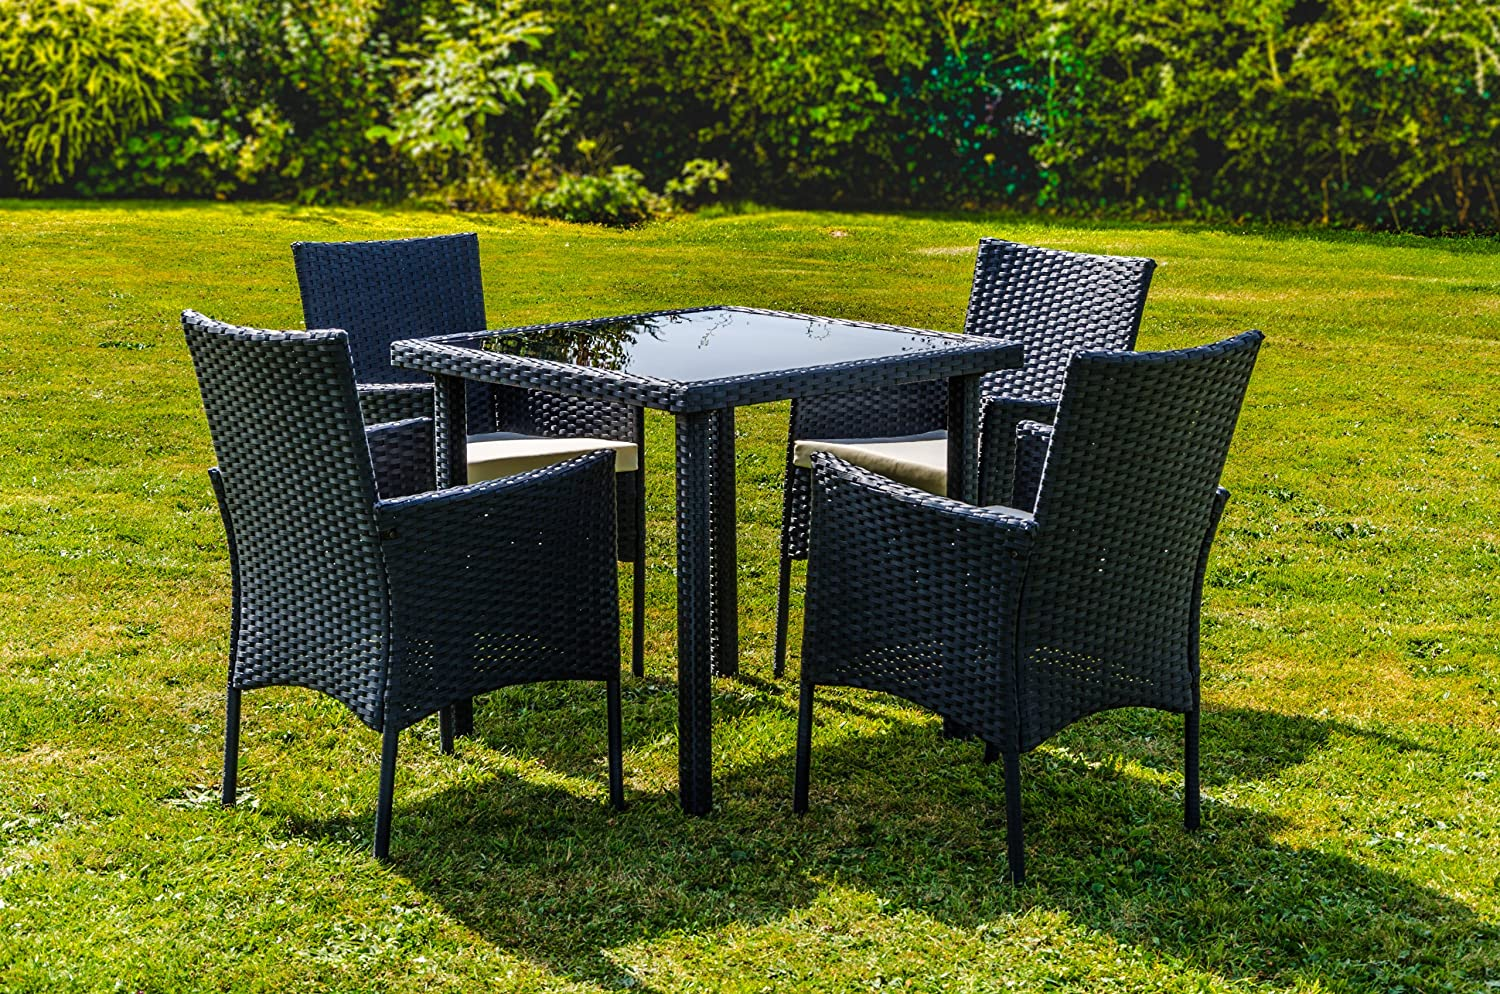 Rattan Effect Outdoor Garden